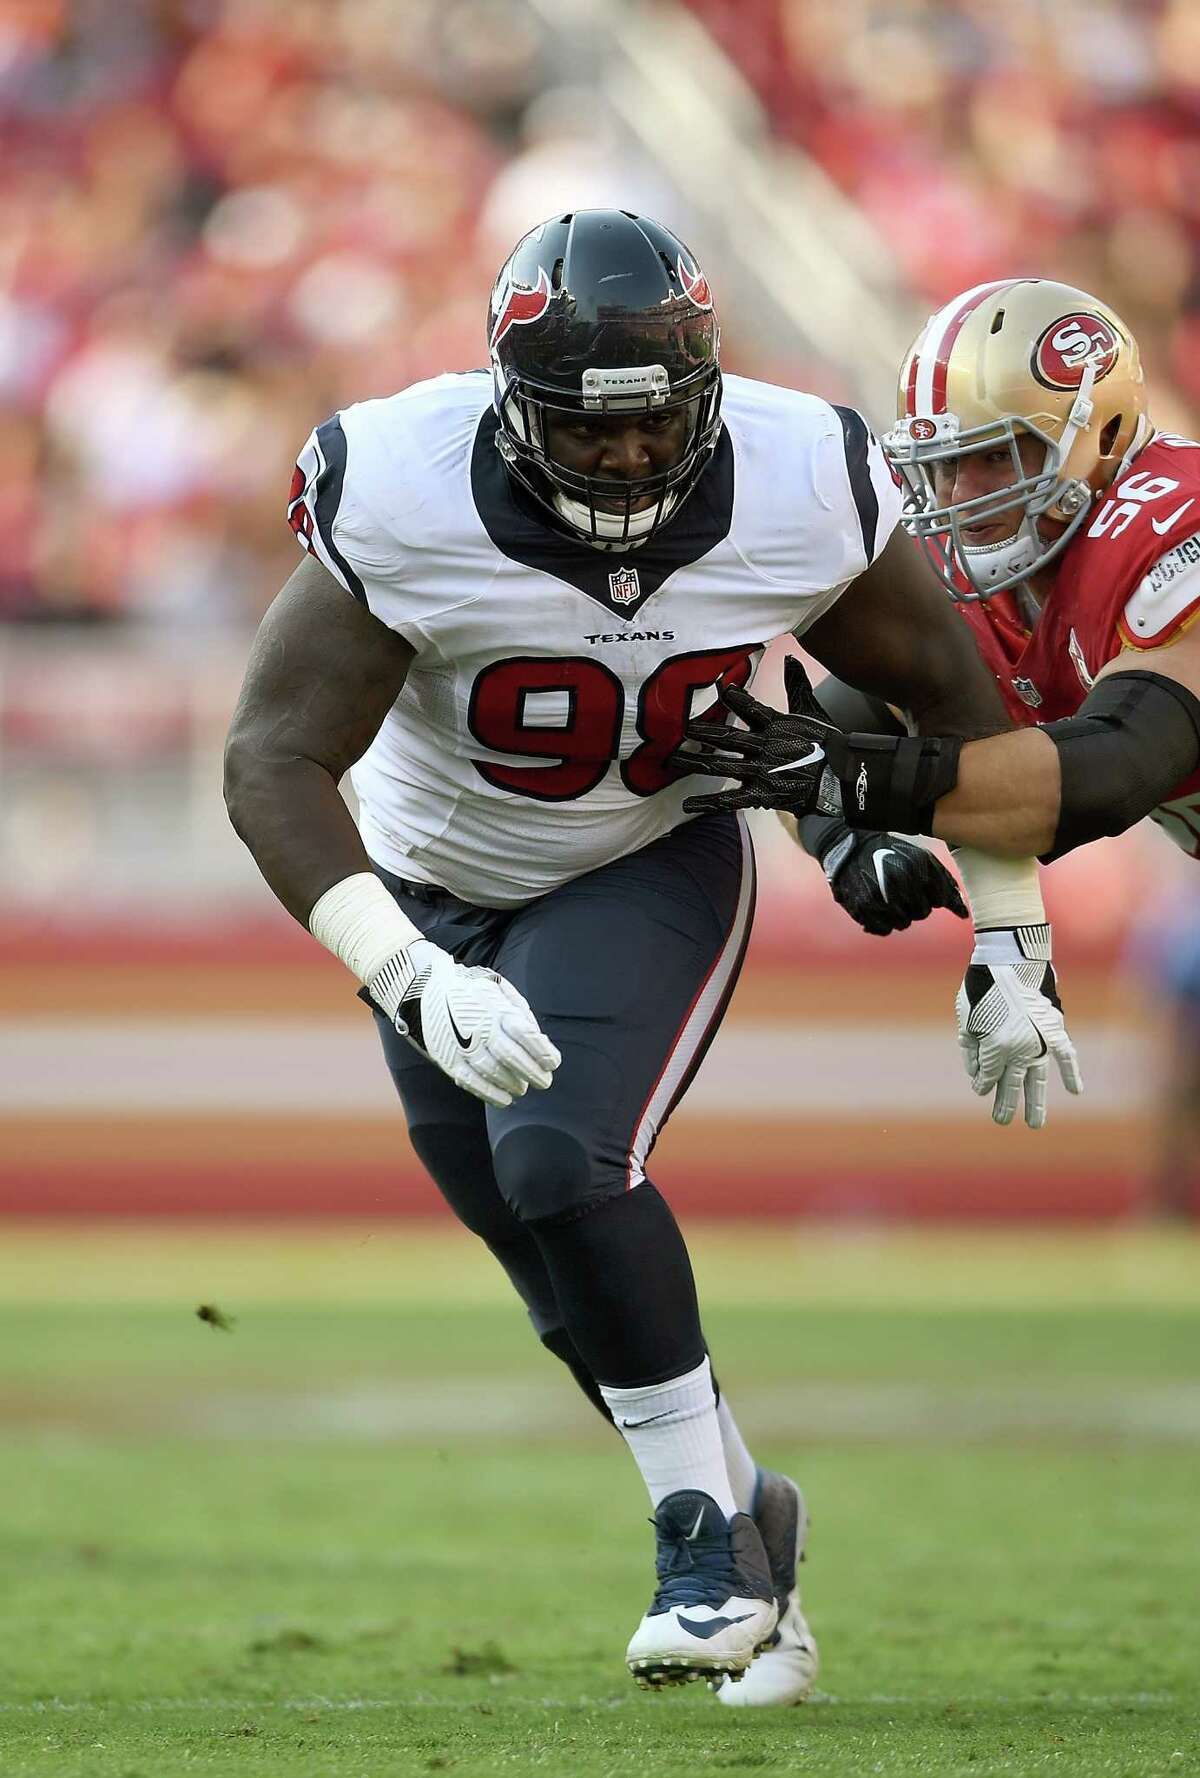 SANTA CLARA, CA - AUGUST 14: Nose tackle D.J. Reader #98 of the Houston Texans pursues the play against the San Francisco 49ers in the third quarter in a preseason game at Levi's Stadium on August 14, 2016 in Santa Clara, California. (Photo by Thearon W. Henderson/Getty Images)